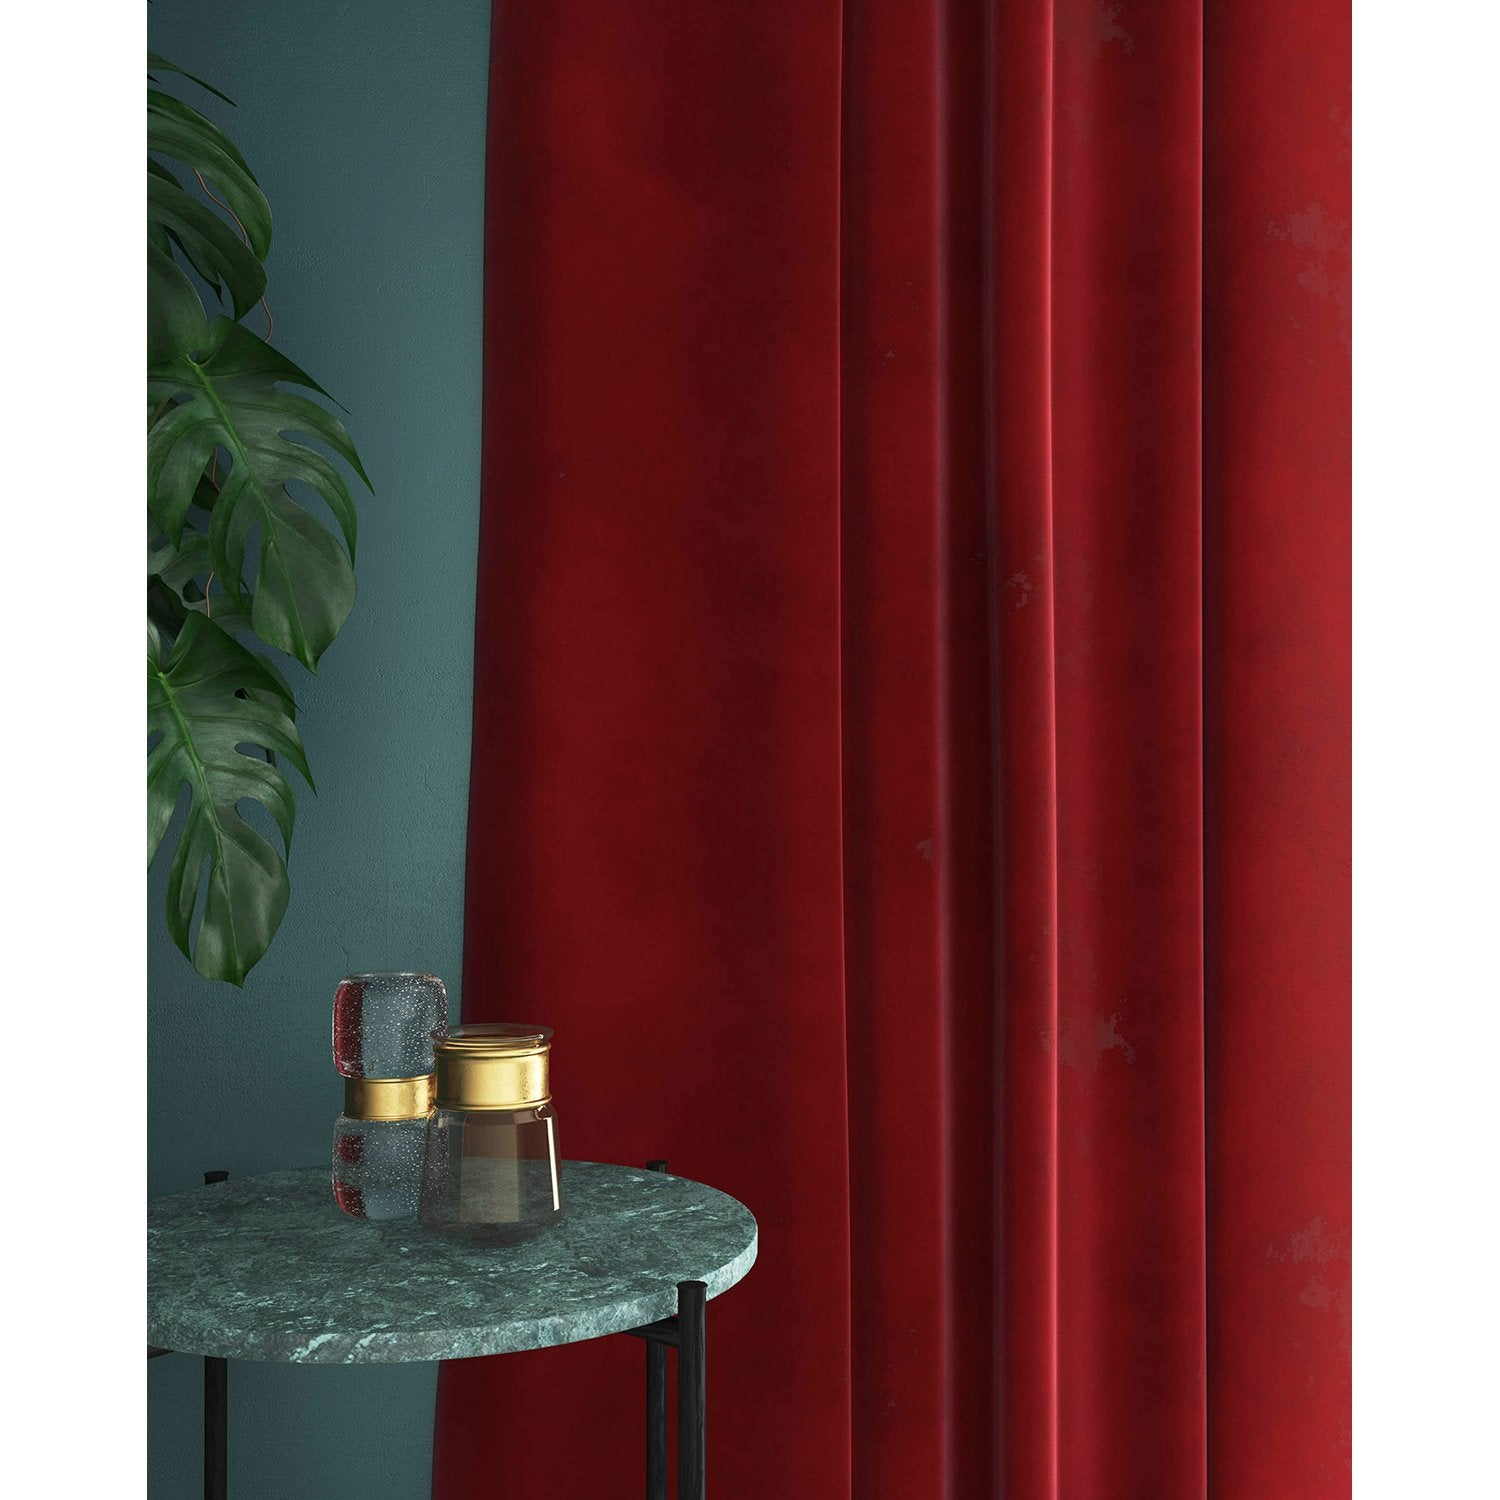 Red velvet curtains with a stain resistant finish